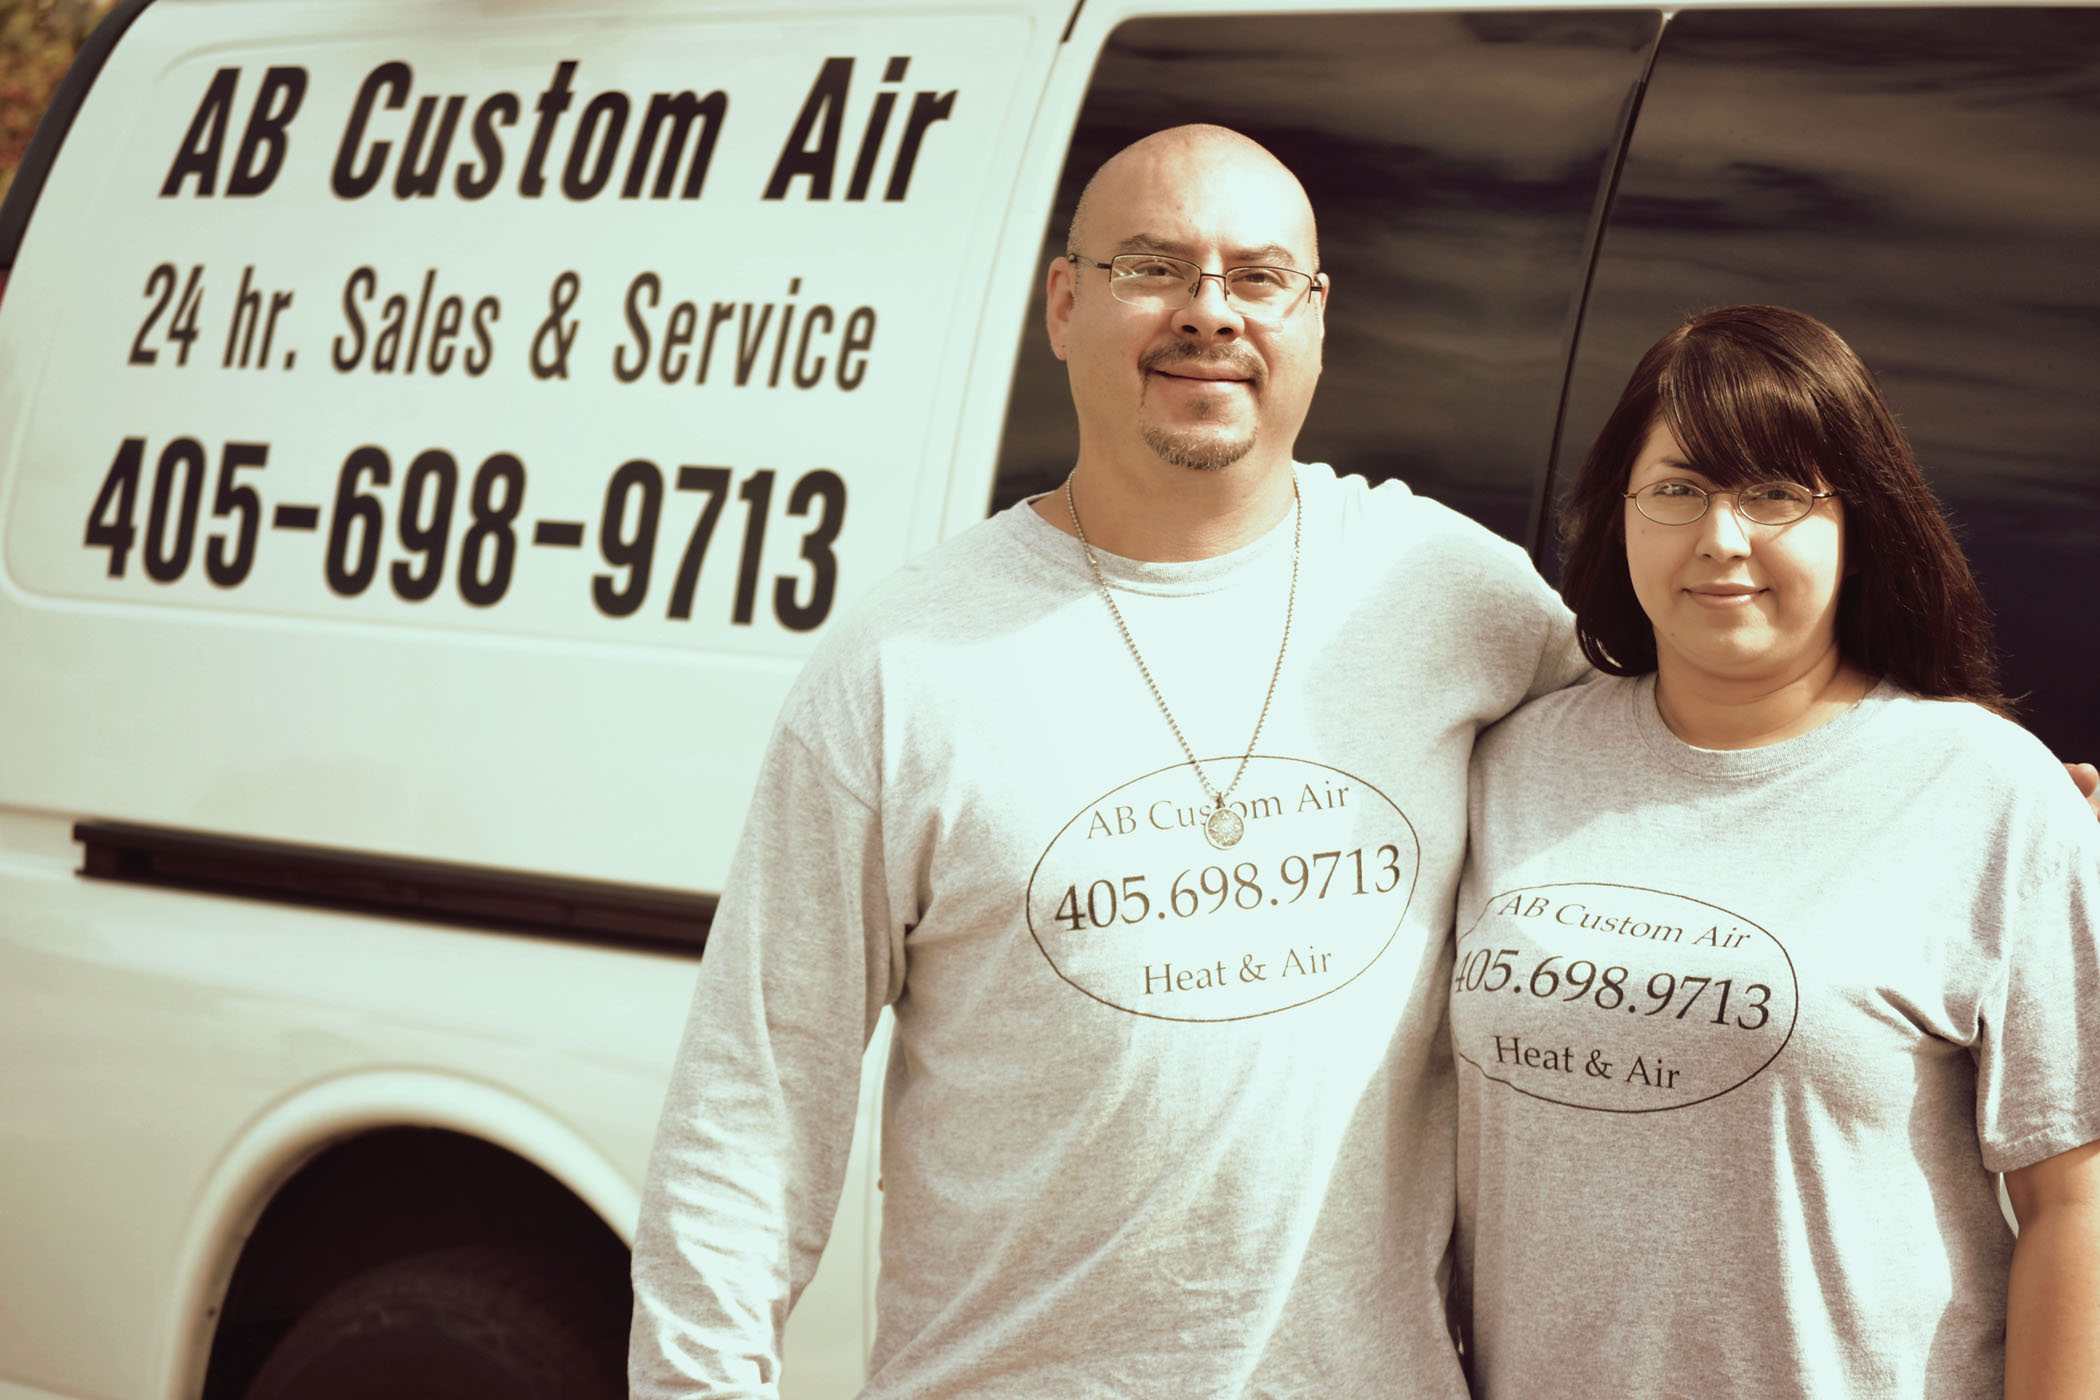 Tony and Patricia Bustos - Metro Technology Centers, Oklahoma City